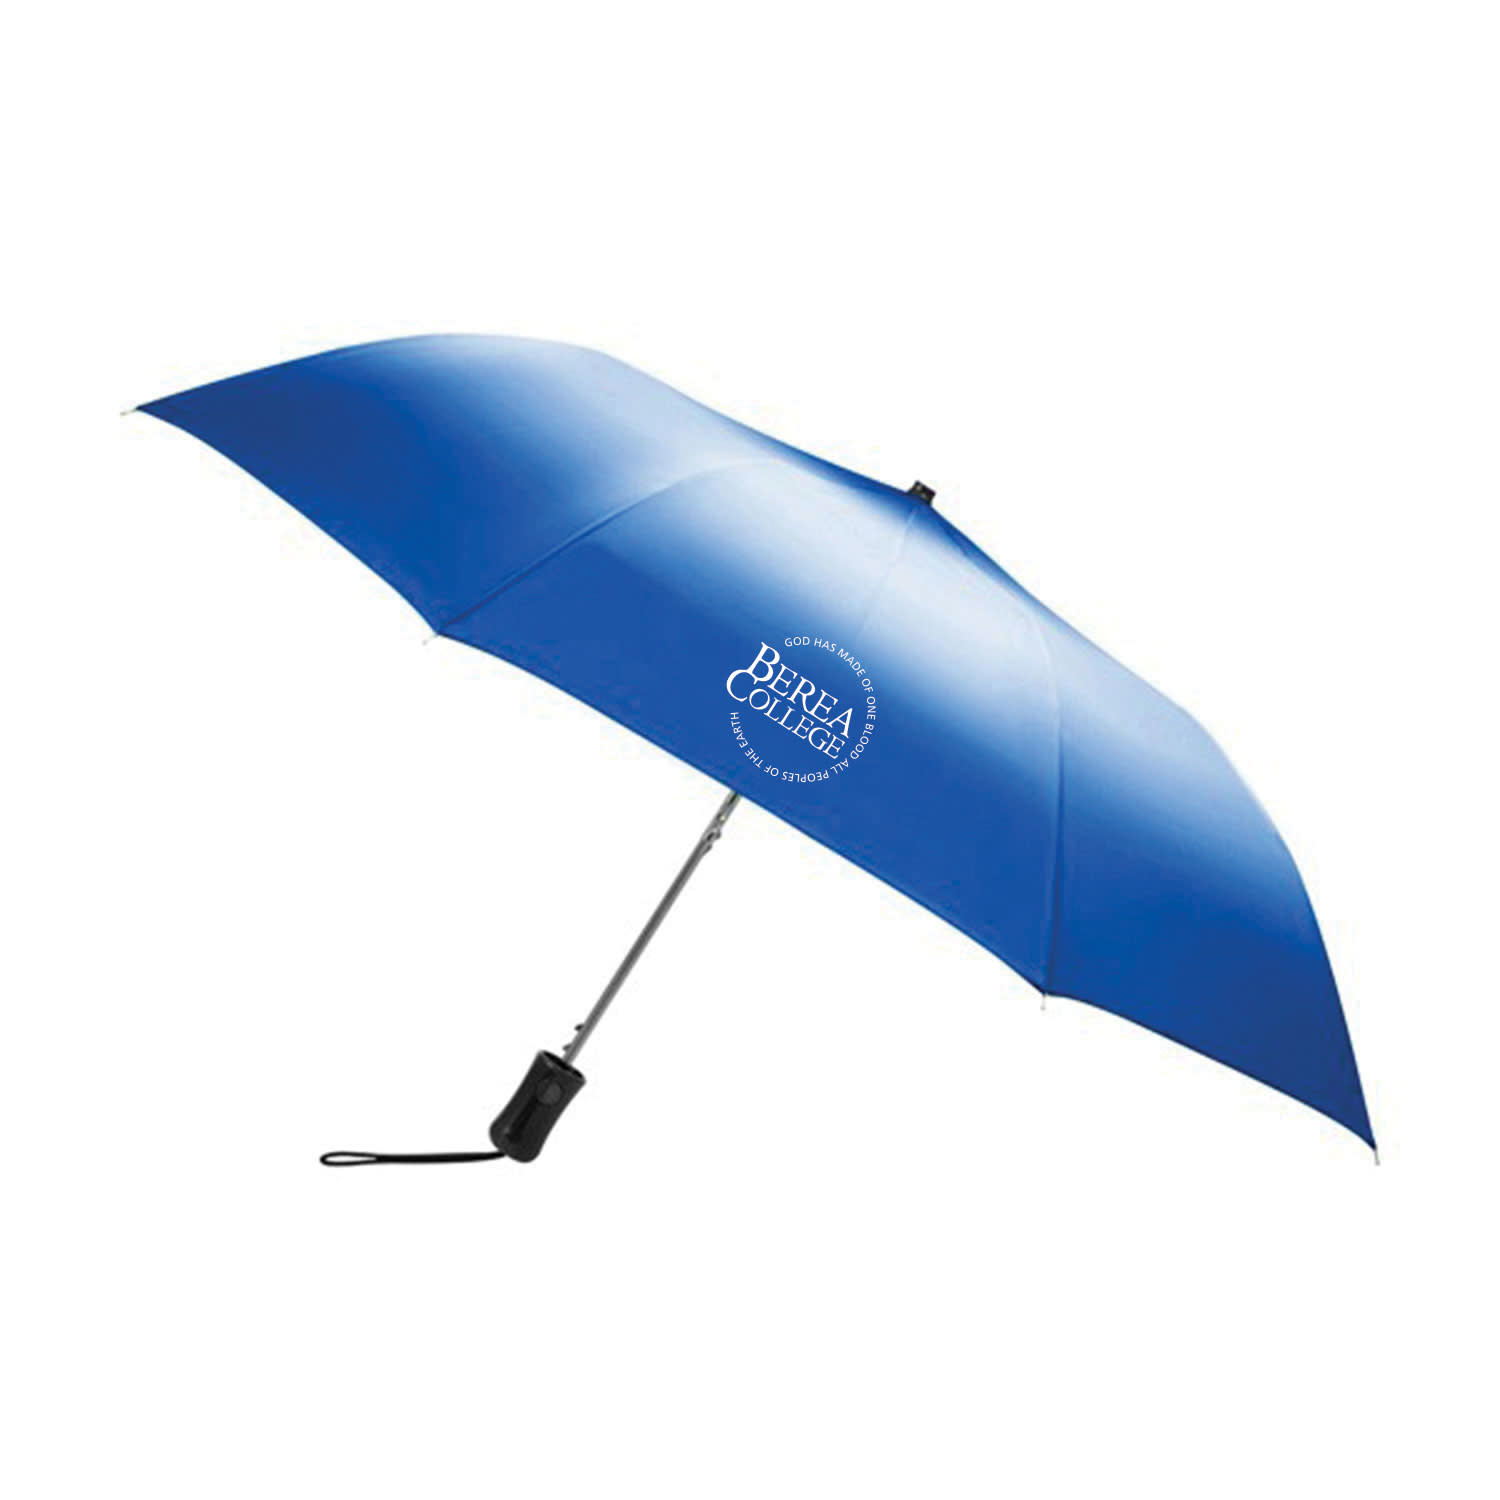 Berea College Umbrella-4